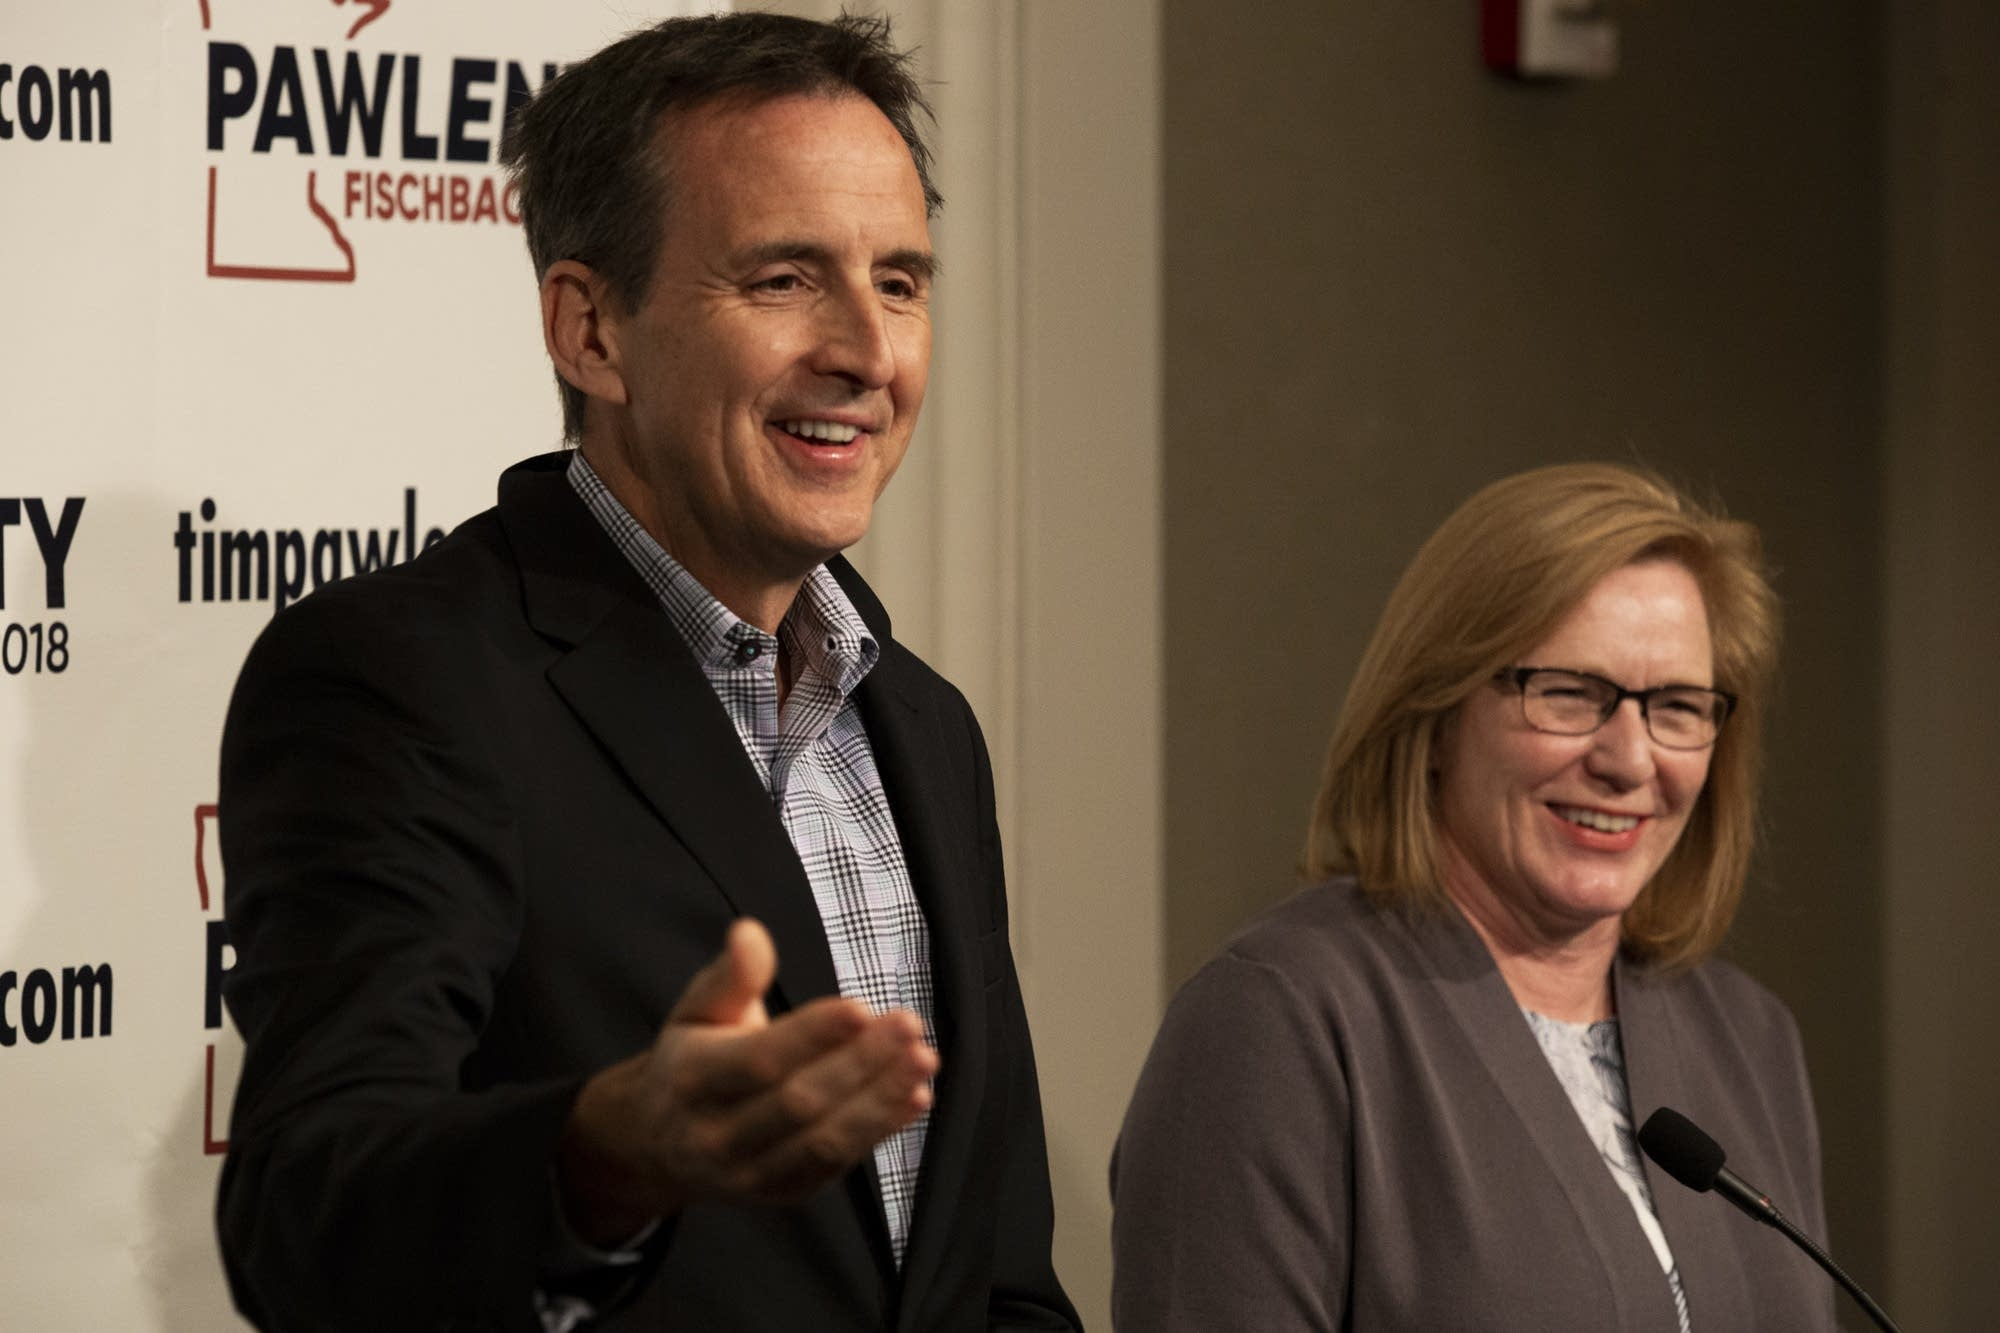 Former Governor Tim Pawlenty and Republican Lt. Governor Michelle Fischbach